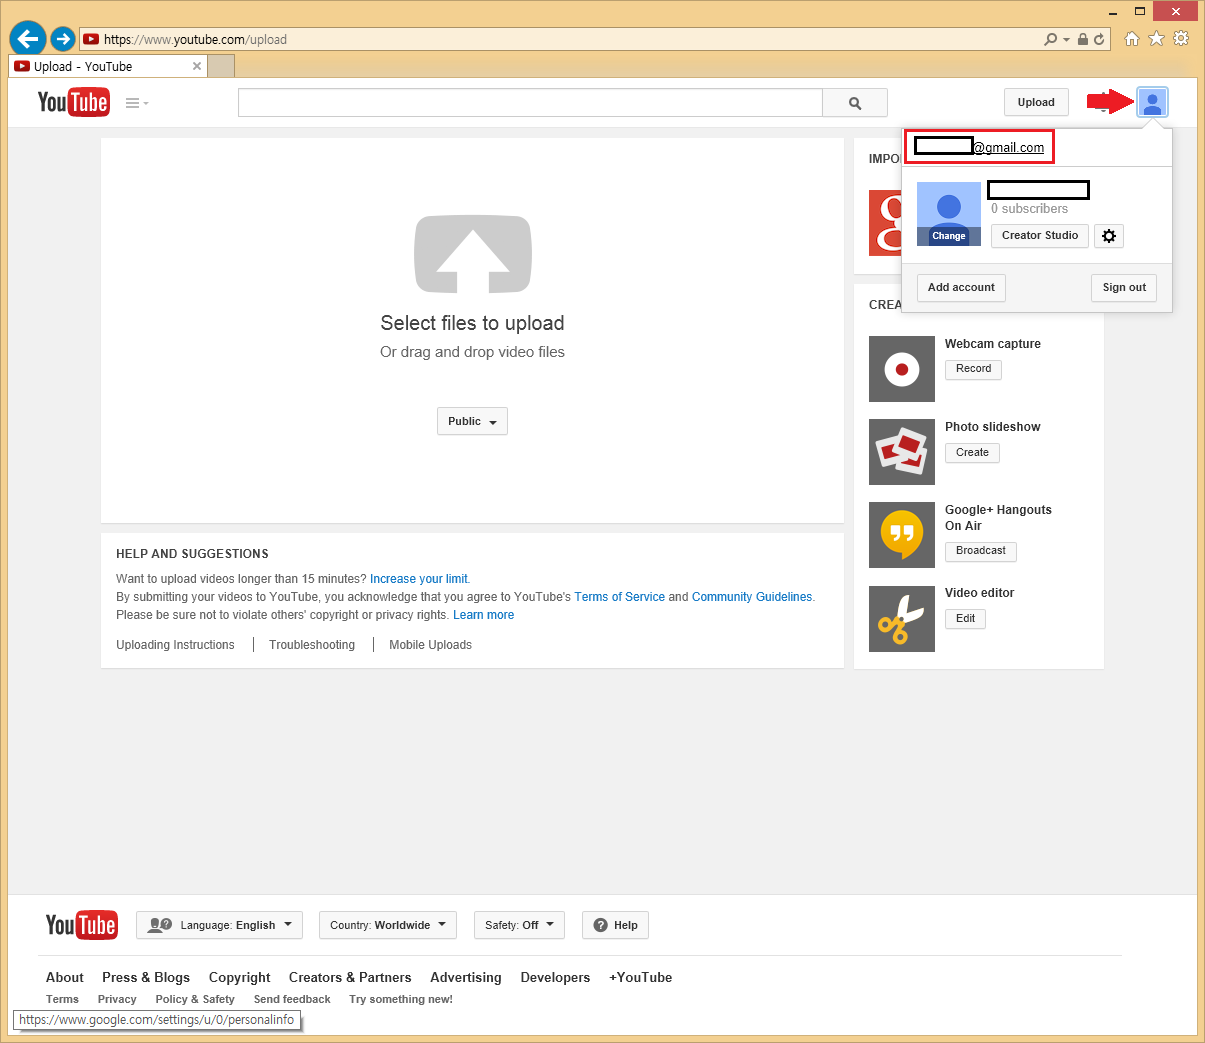 Uploading video to Youtube fails  How do I fix this